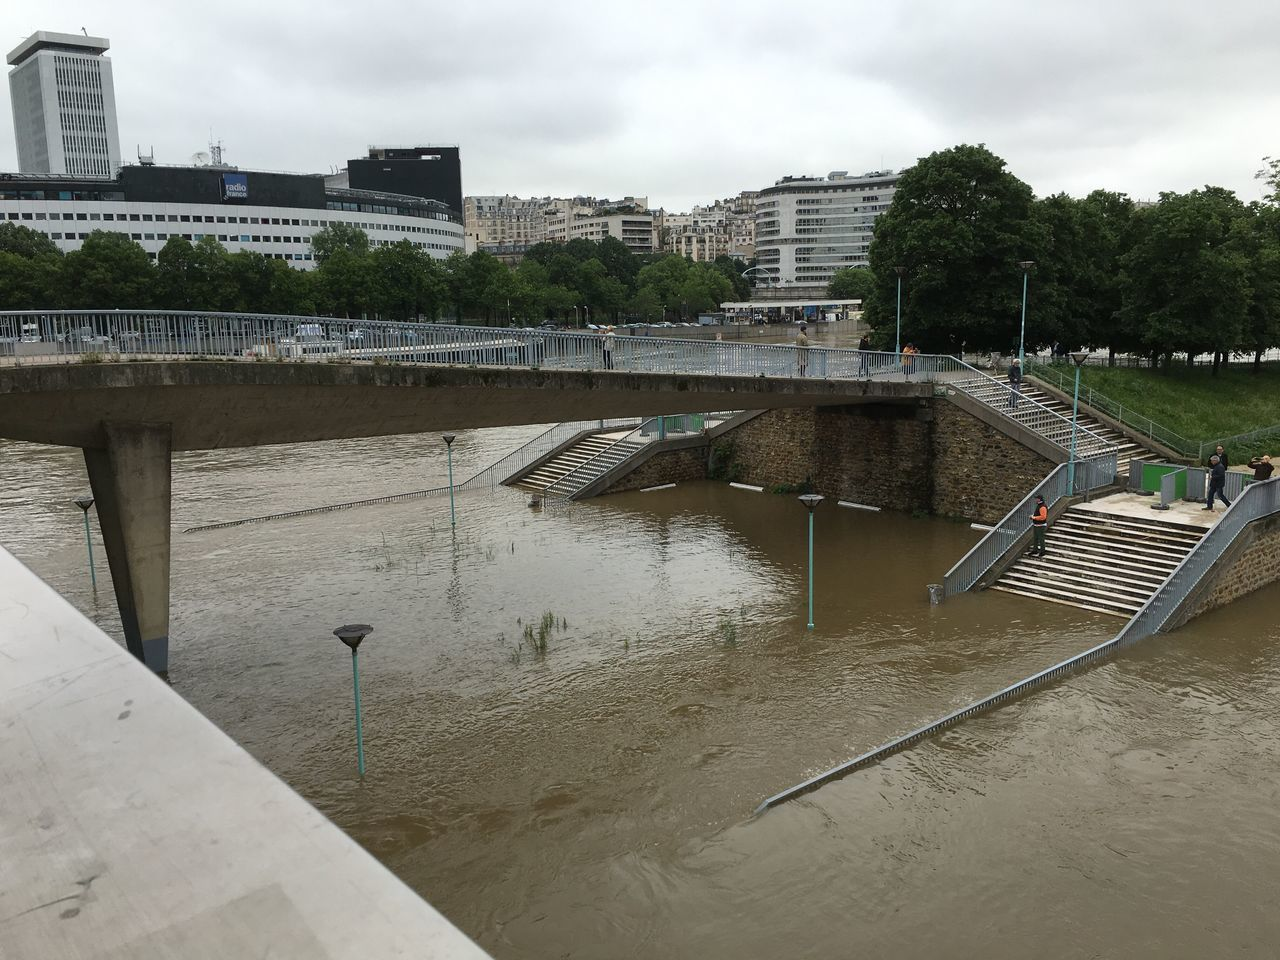 Bridge Paris Seine River Crues Violent Nature Exeptional Photographs Landscape Danger Tourist Attraction  Famous Place Flooding River Inundacion Seine Global Warming Urban Landscape Cityscape City Life Flooding Flood River City Summer Inondation Water Waterfront